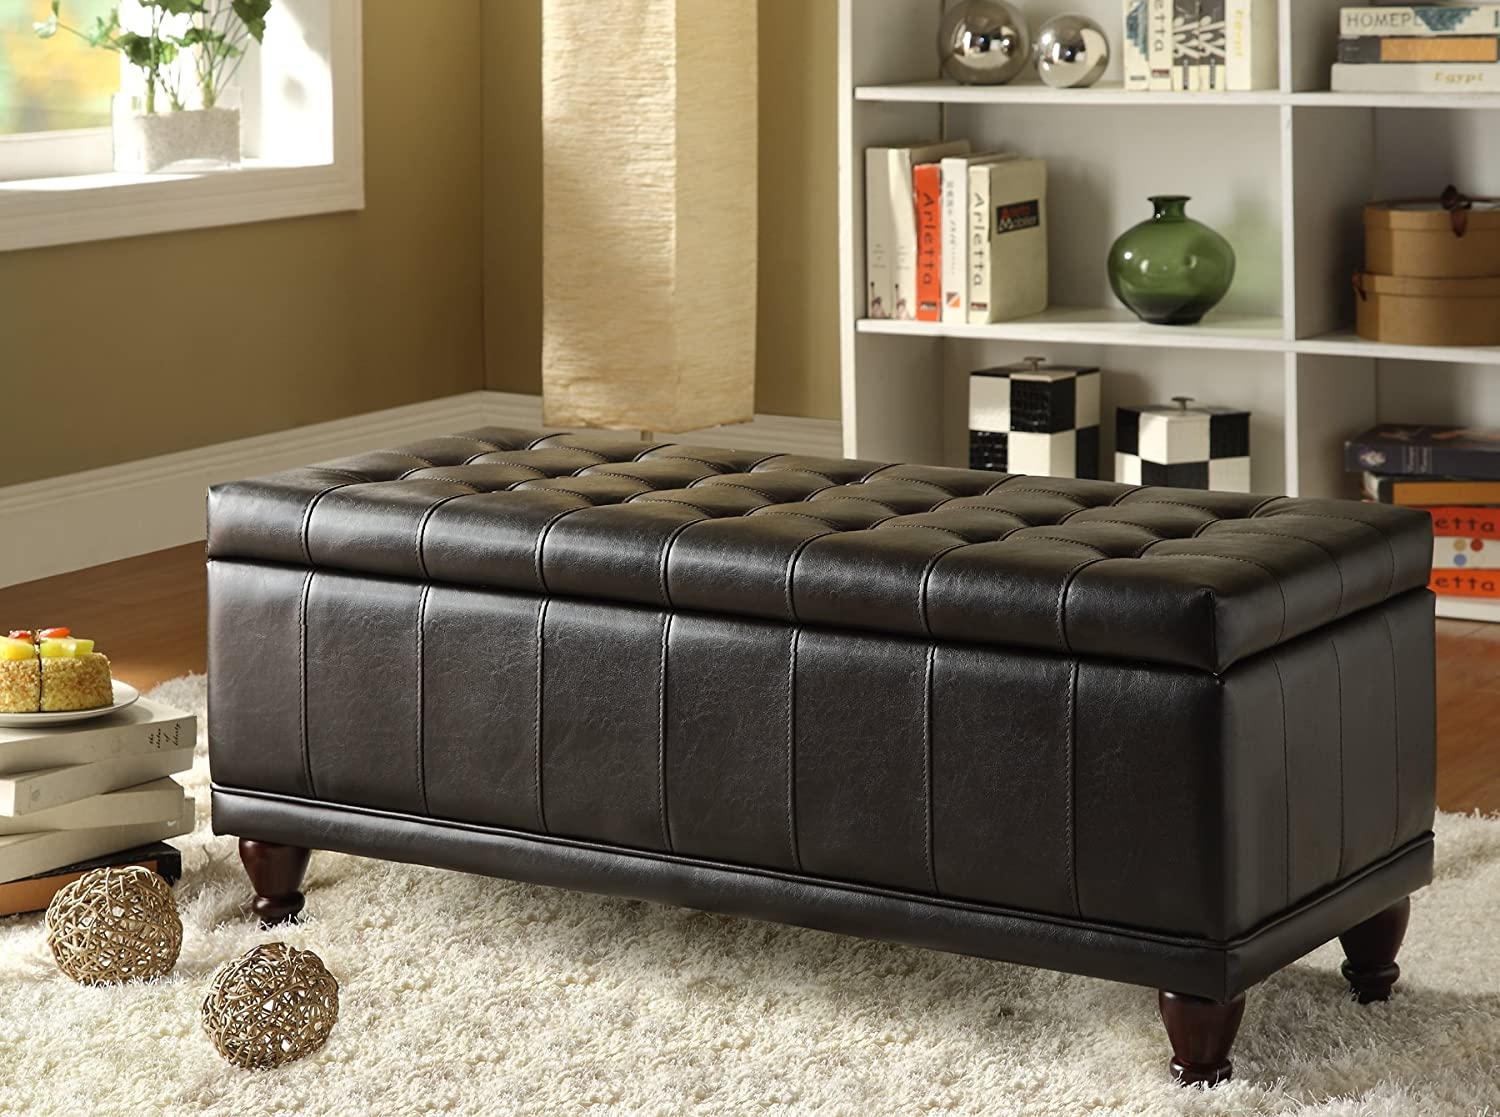 Amazoncom Homelegance 4730PU Lift Top Storage Bench with Tufted